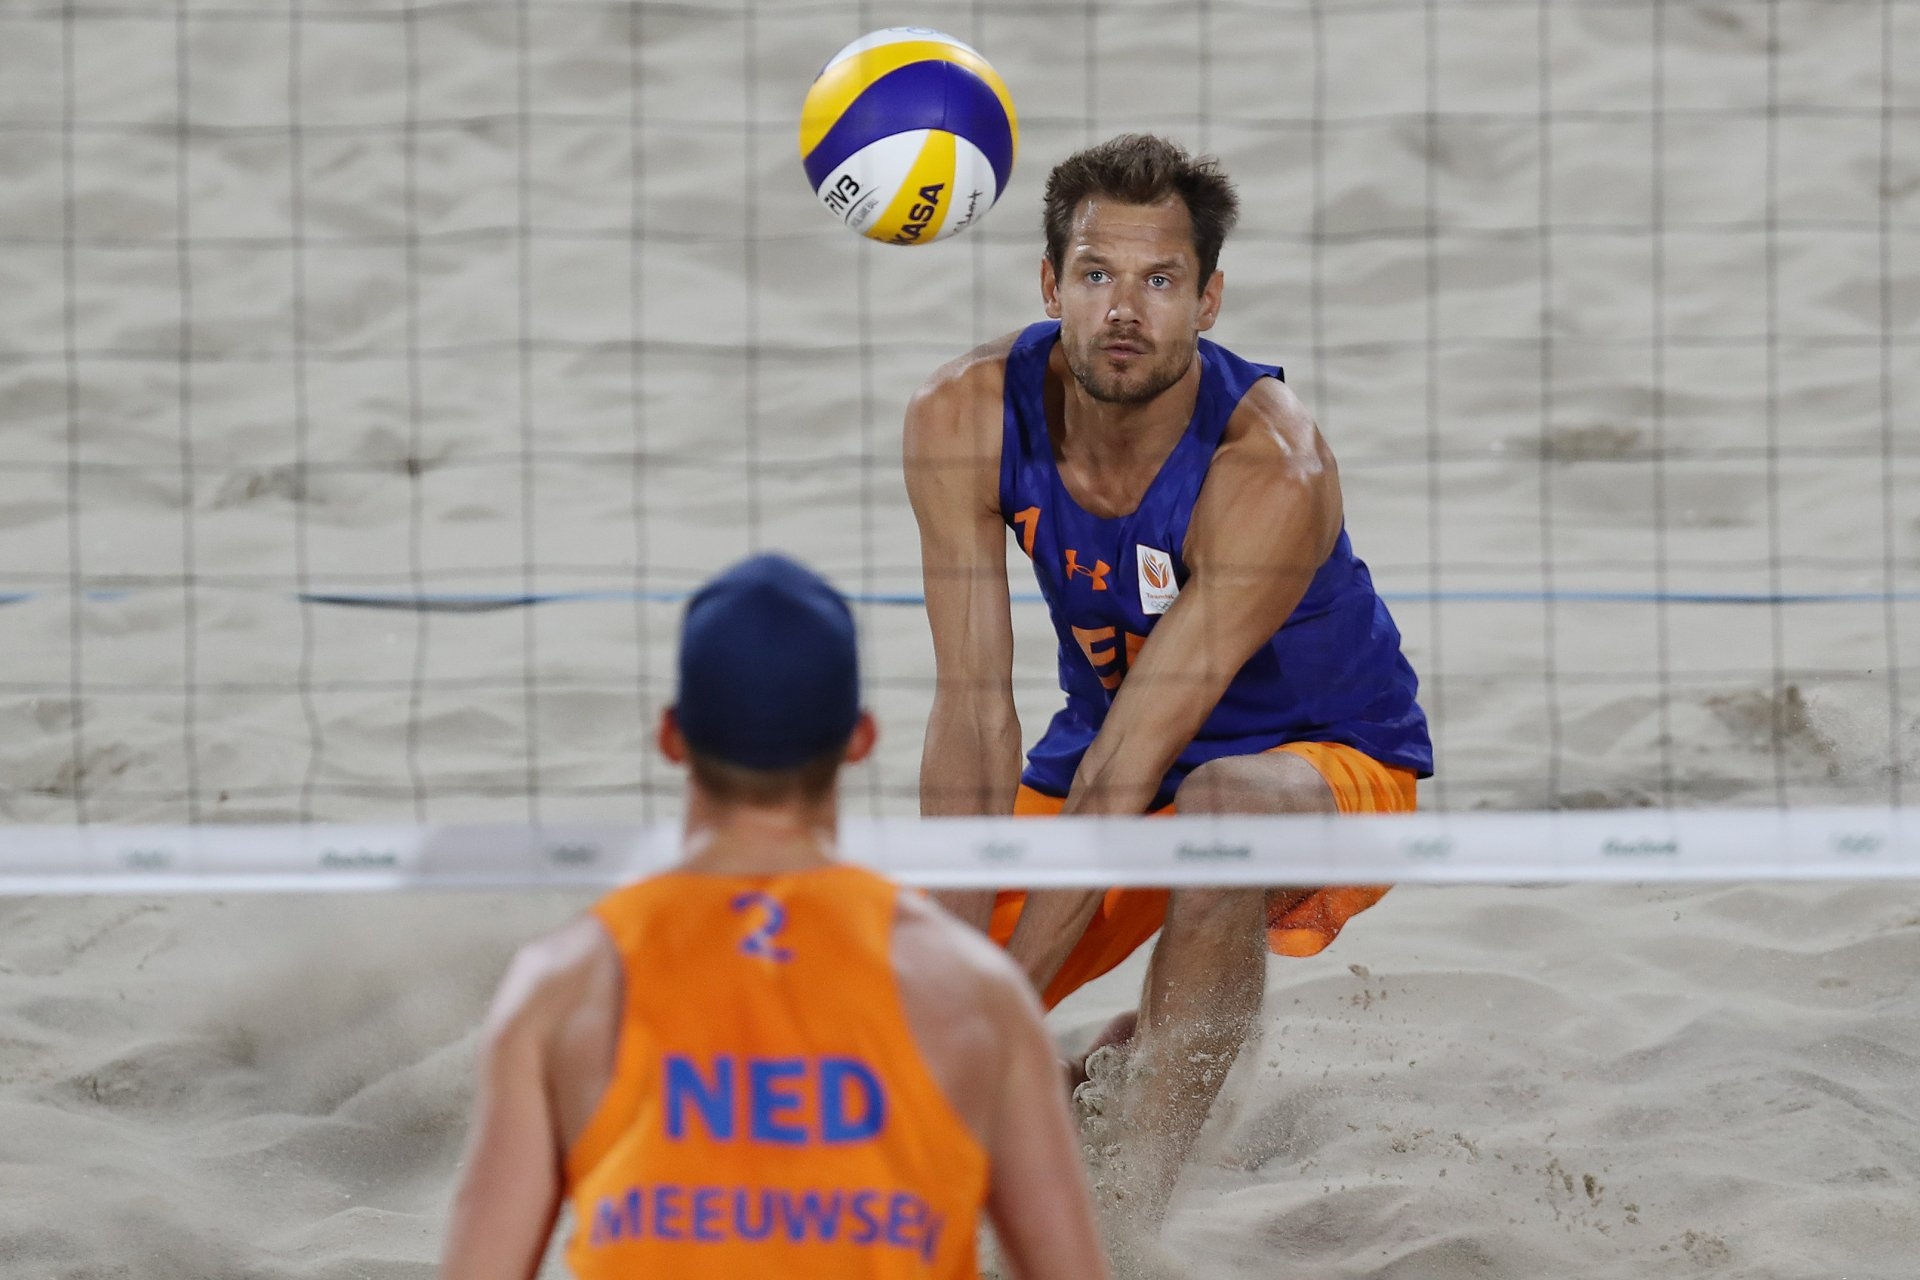 The last match of Nummerdor's playing career was a quarterfinal matchup against compatriots Brouwer and Meeuwsen at the Rio 2016 Games (Photocredit: FIVB)